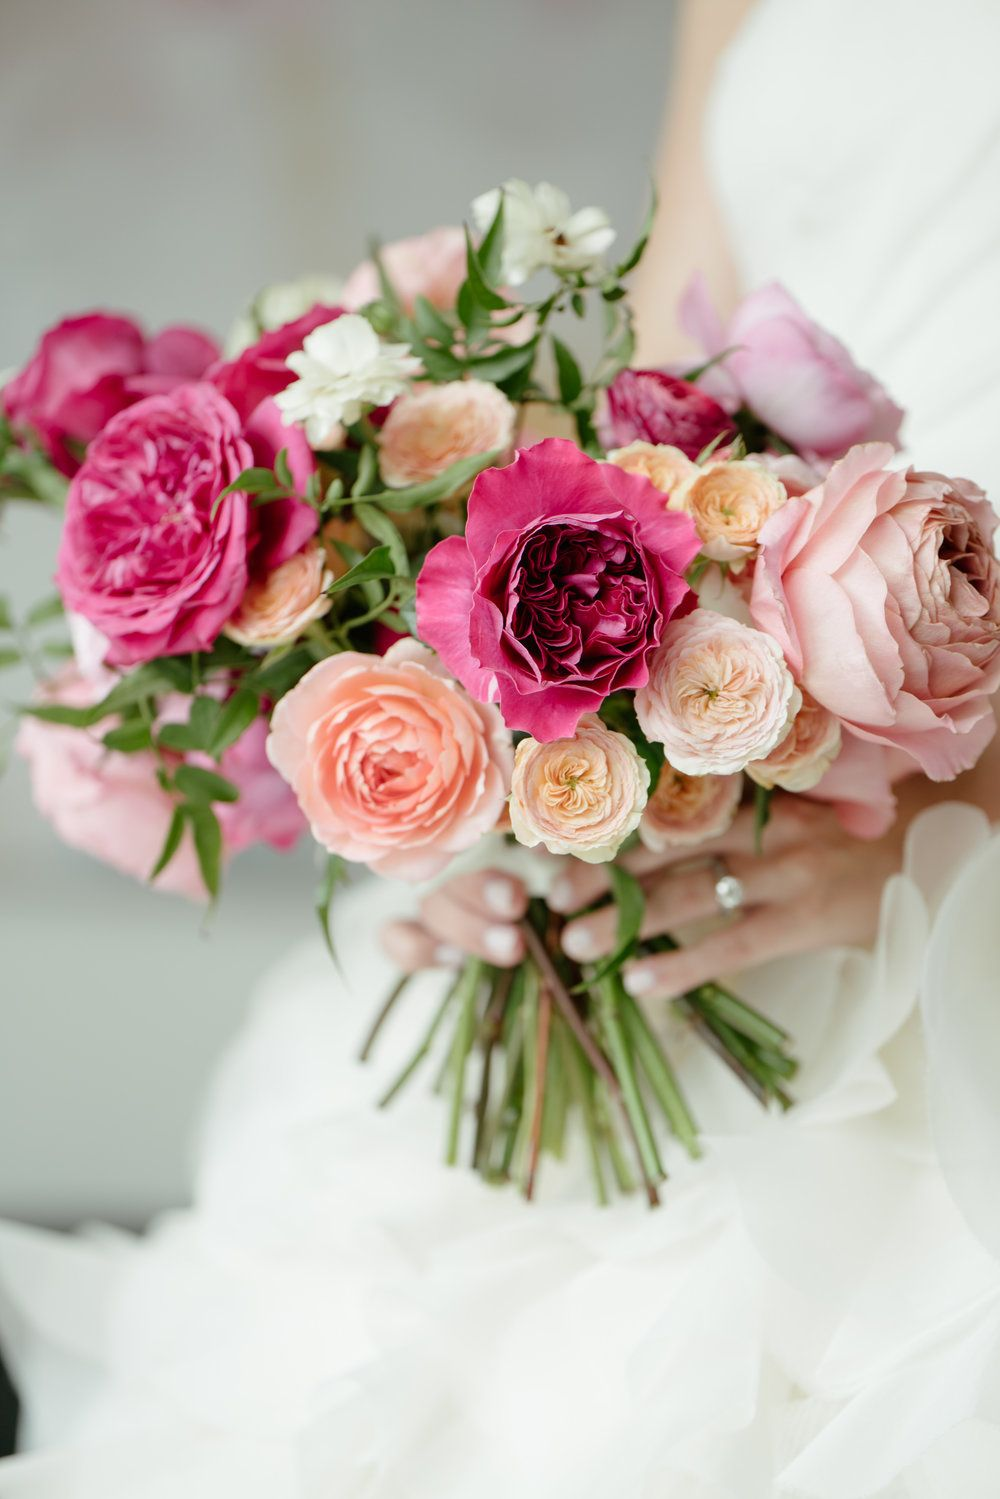 Bridal Bouquet Bright Colored Wedding Flower Garden Roses Coral Peach Hot Pink Bridal Cheap Wedding Flowers Wedding Bouquets Pink Hot Pink Wedding Flowers